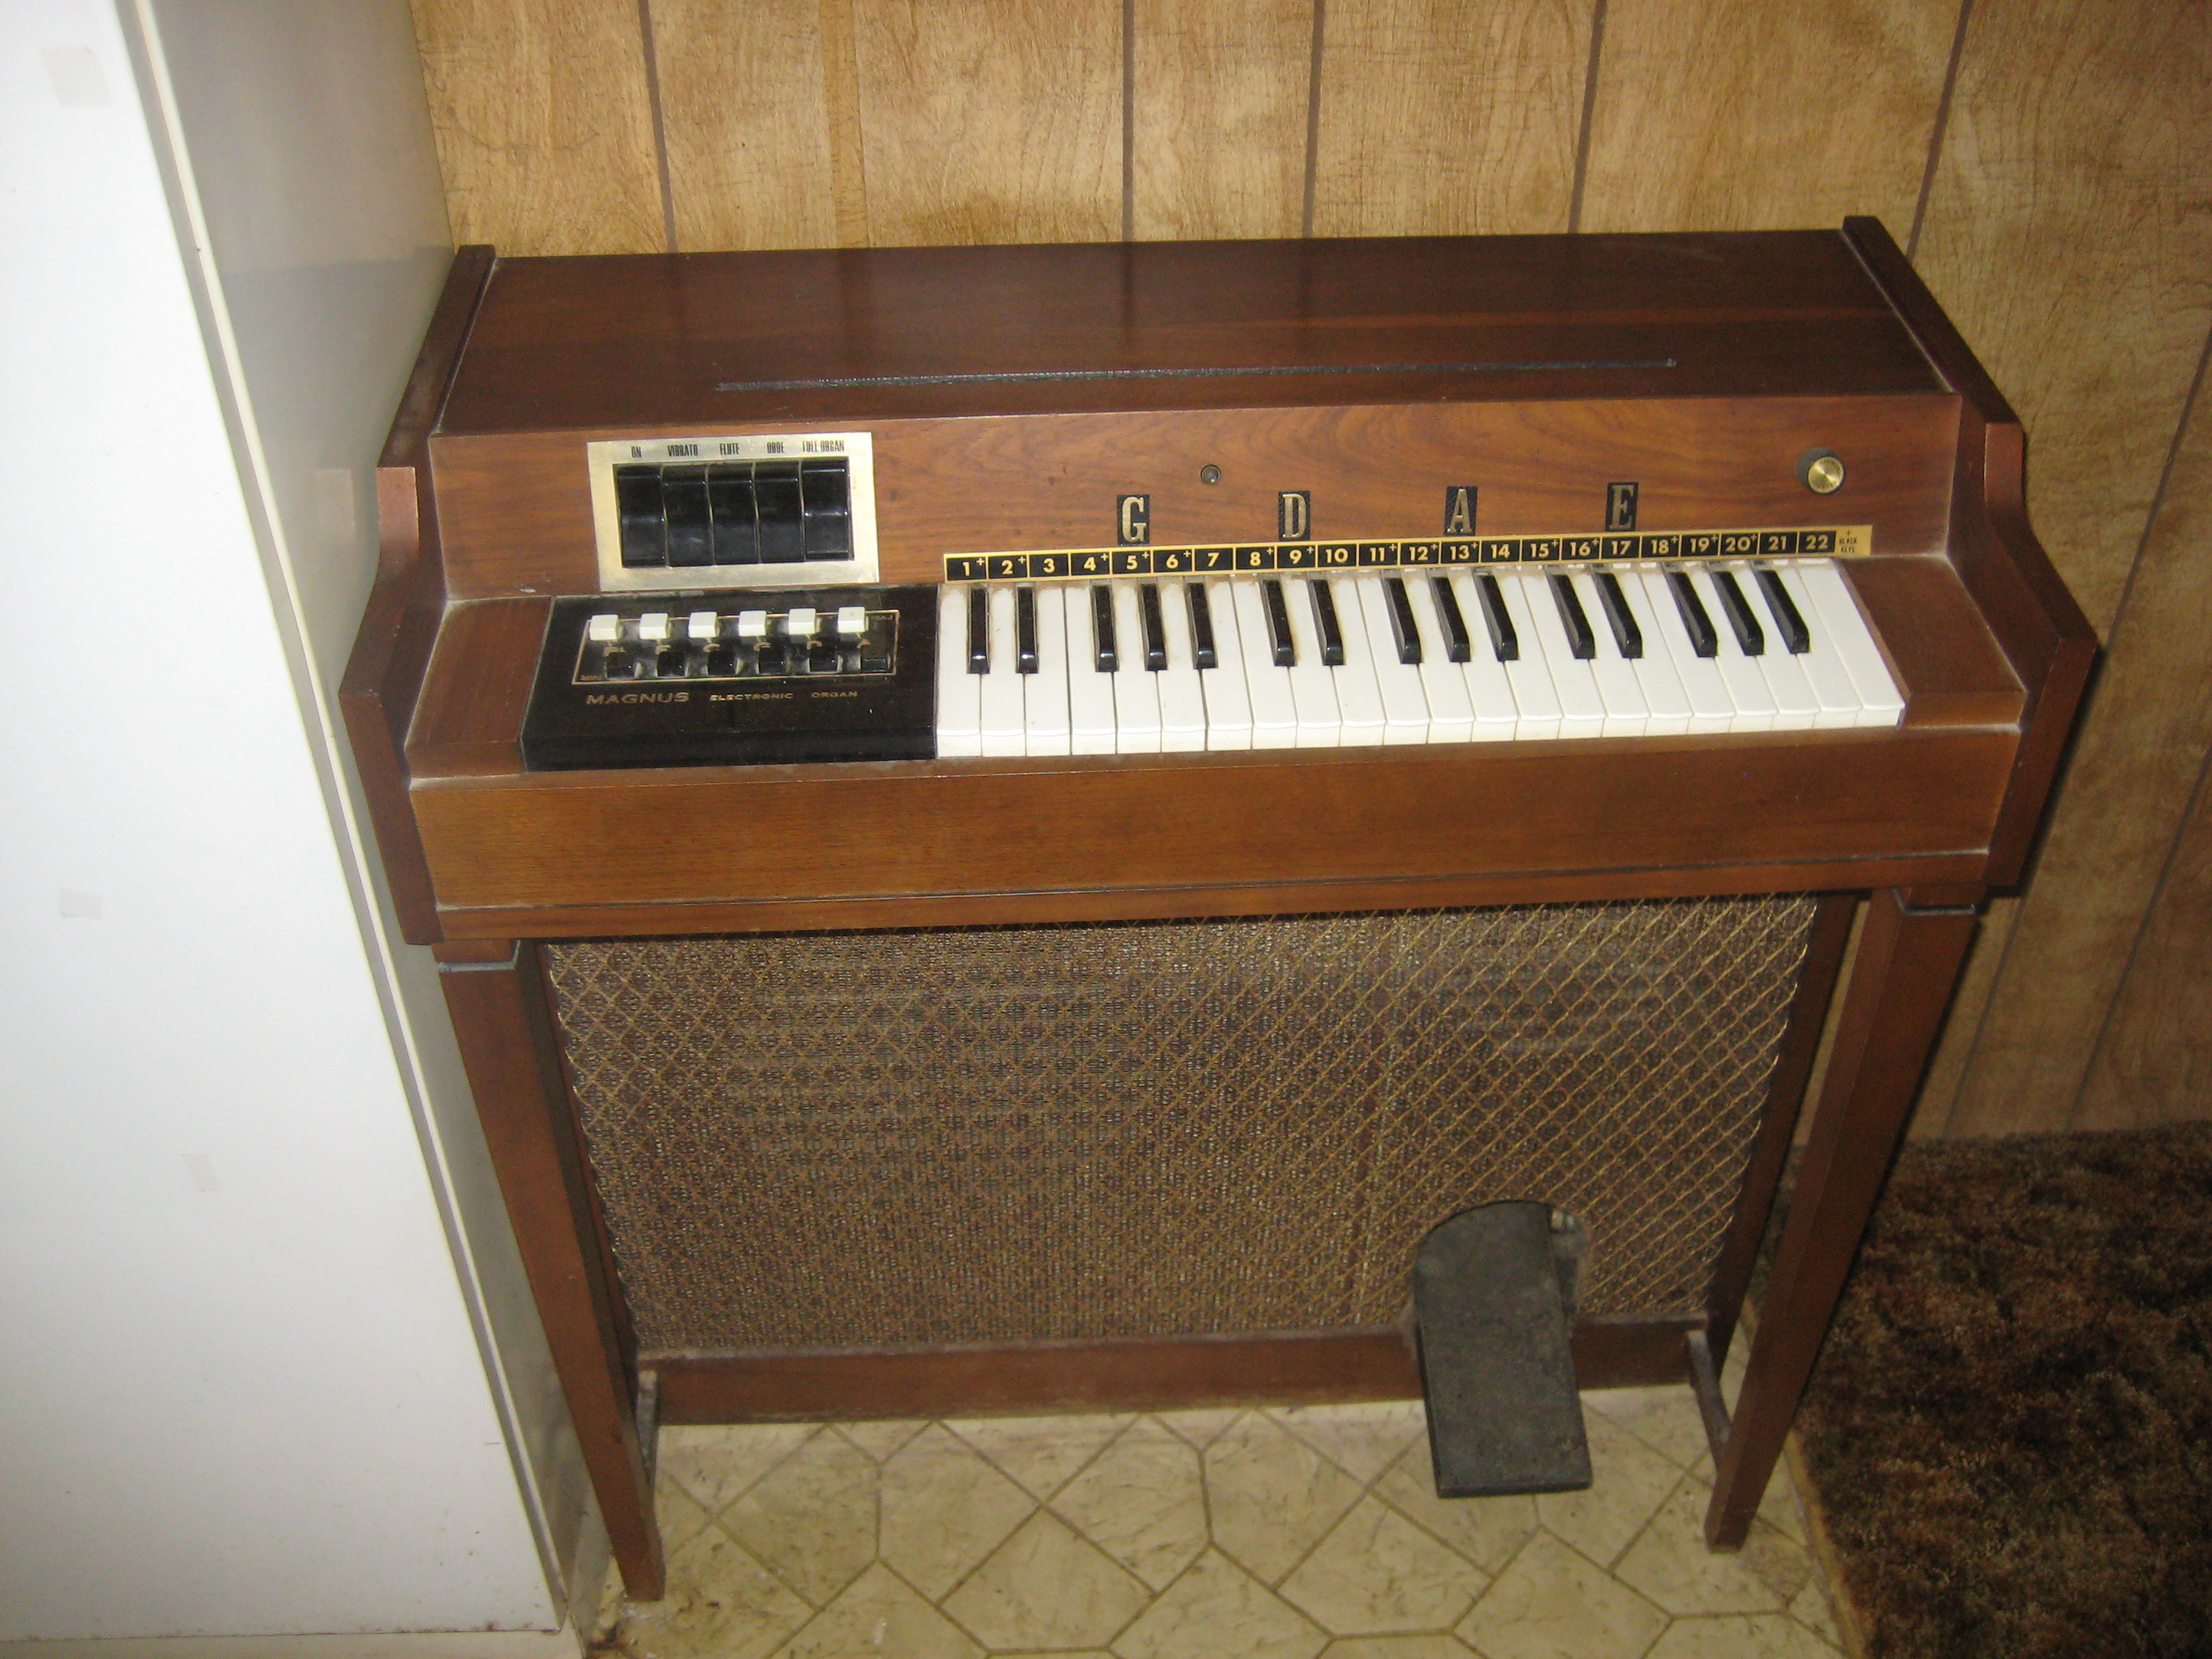 Description Magnus electric chord organ (free stand, wood, 3oct, 6maj ...